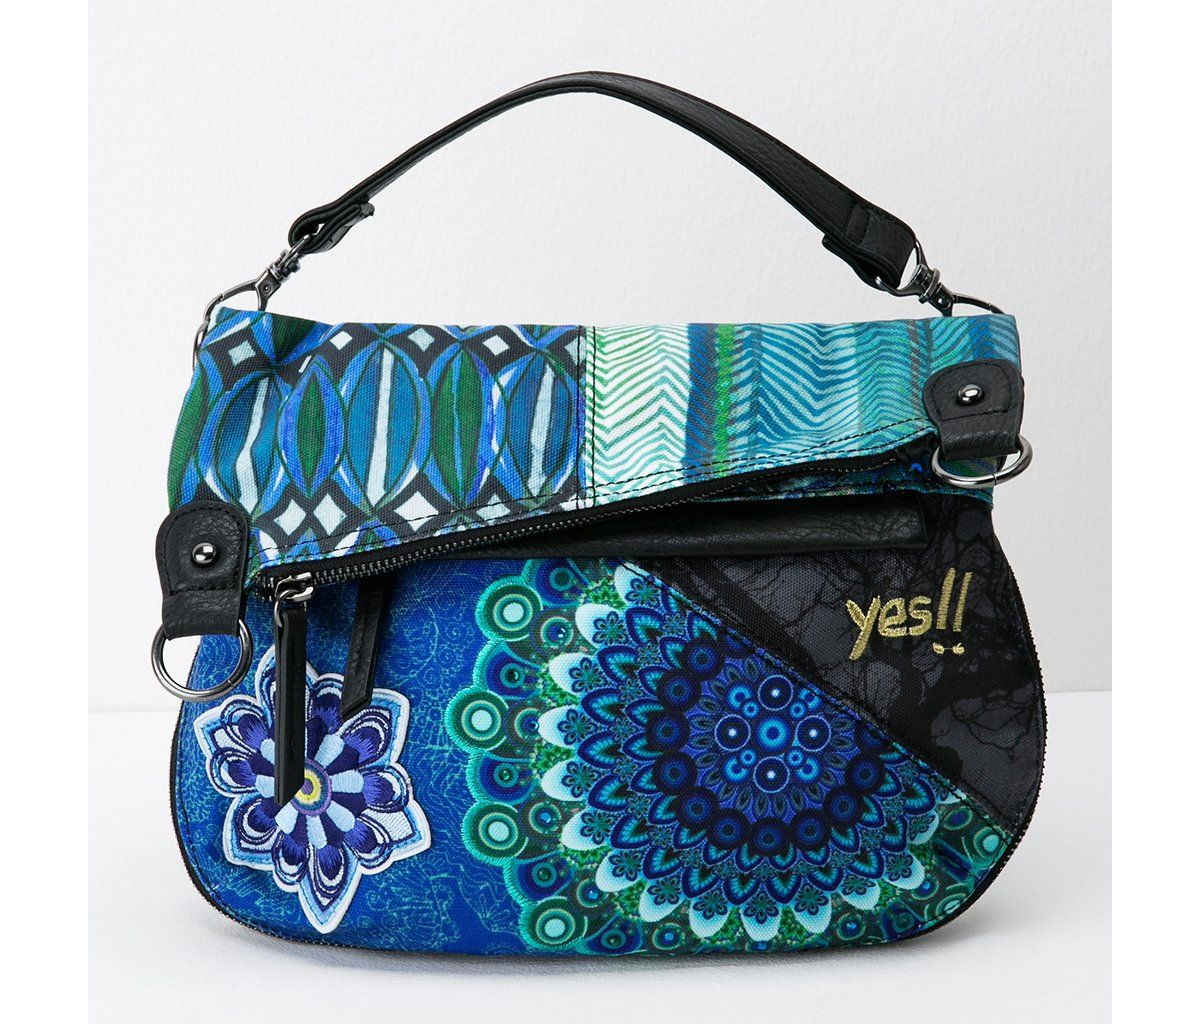 Carry Blue Messenger Bag Stuff bagful Of Me 0xpRxq7w